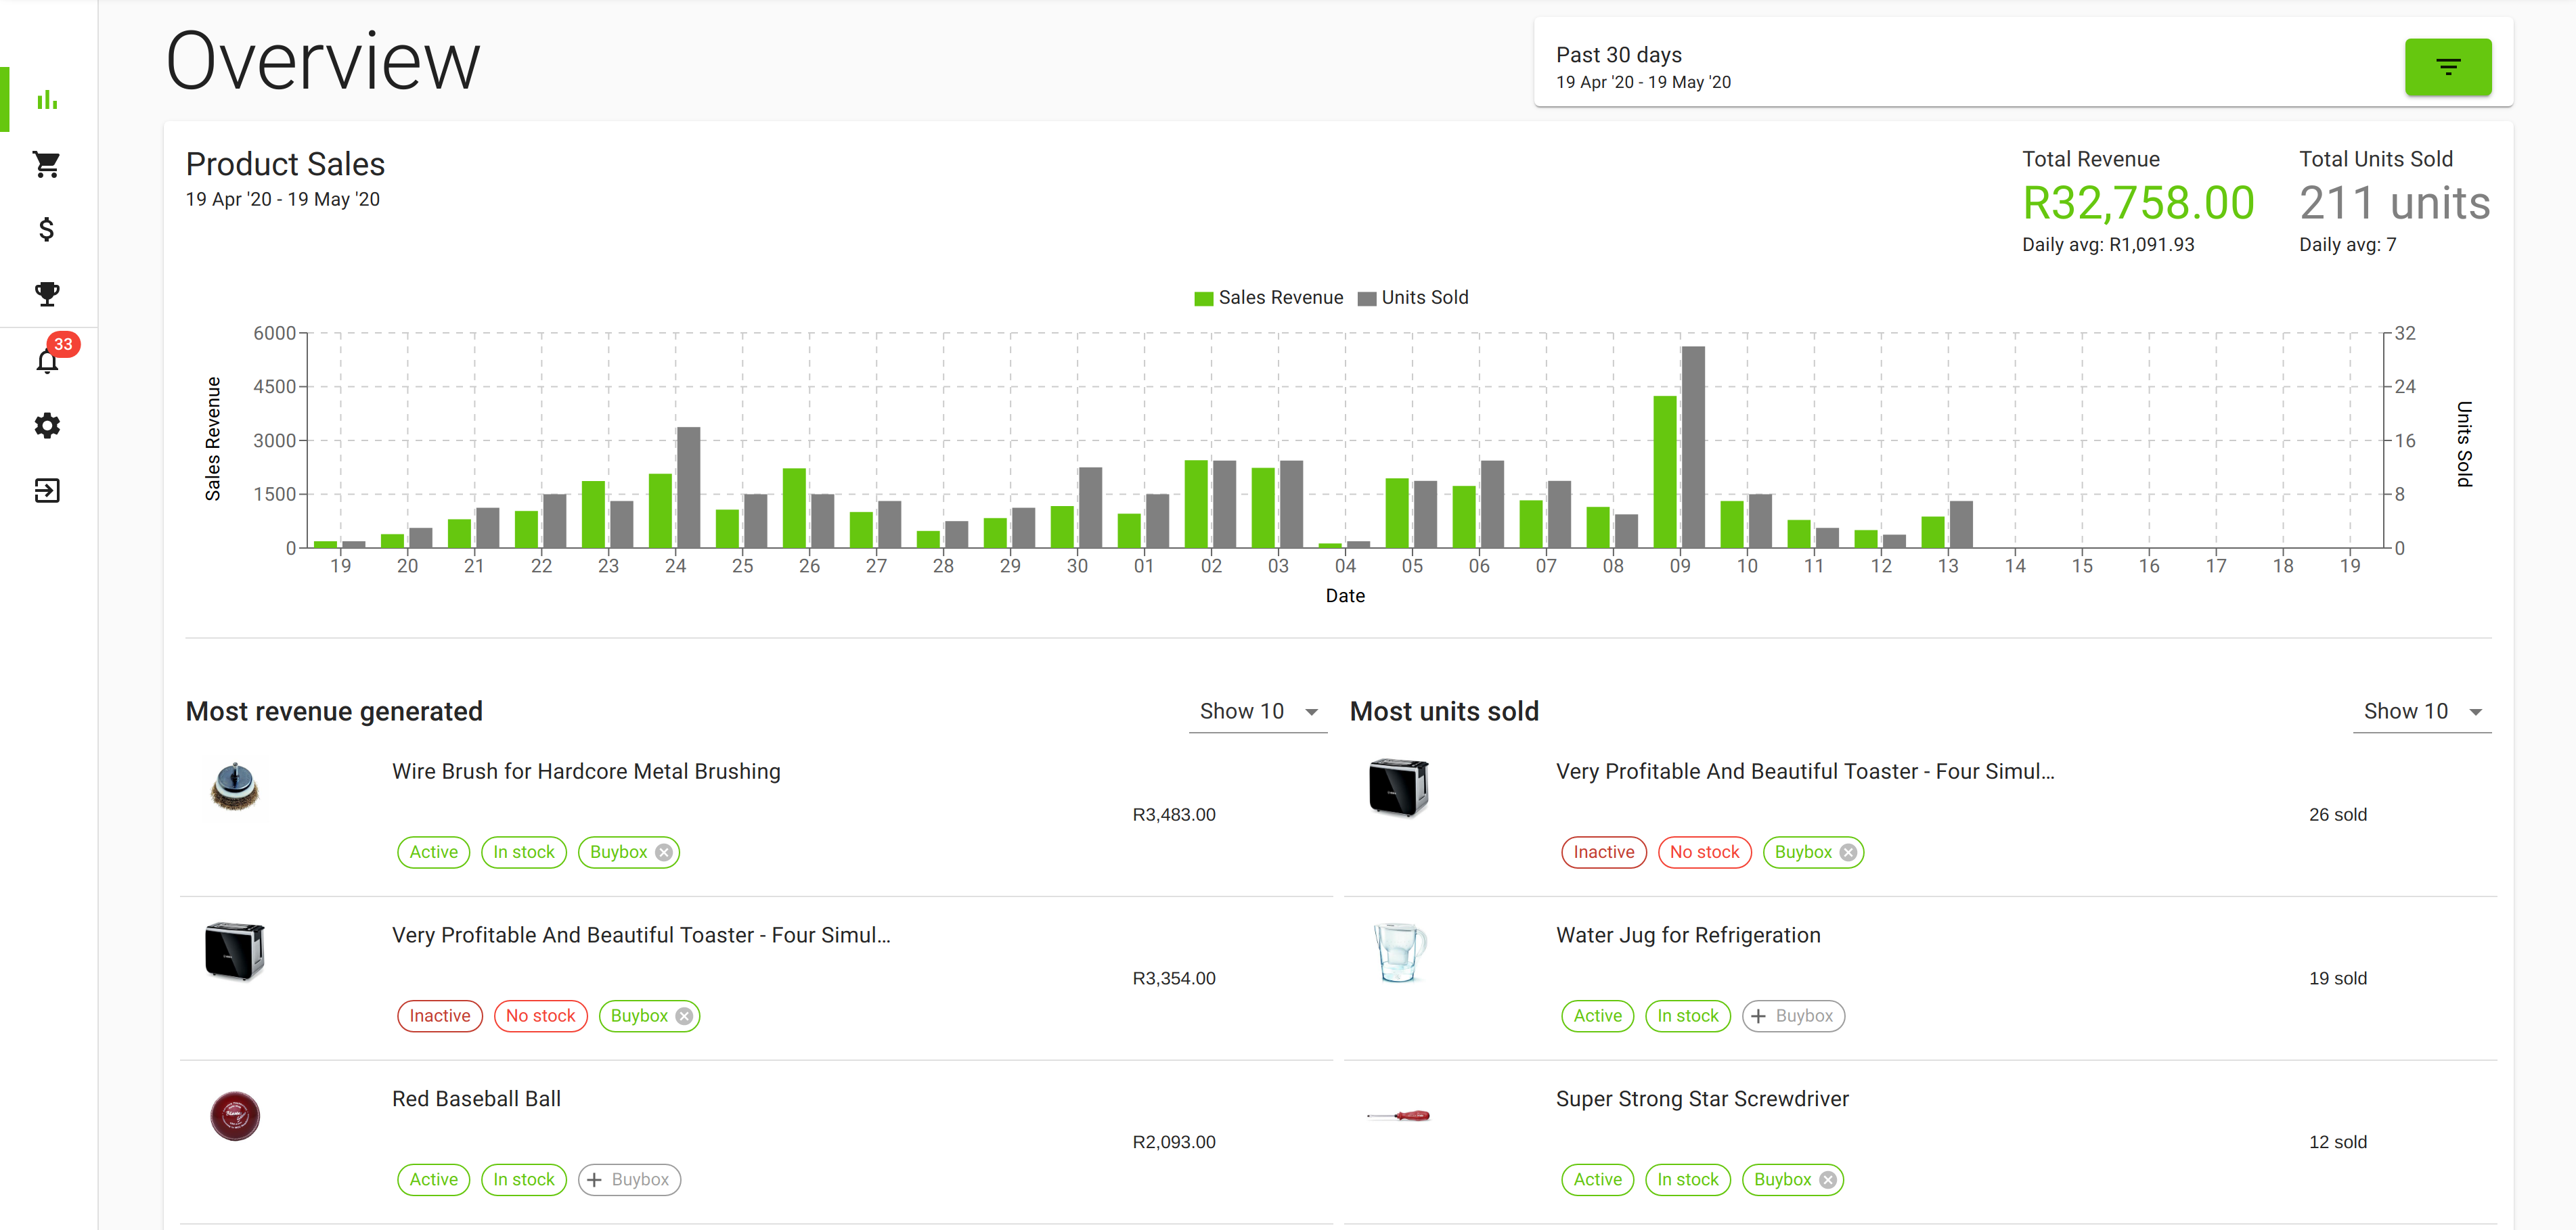 Overview page with graphs and analytics